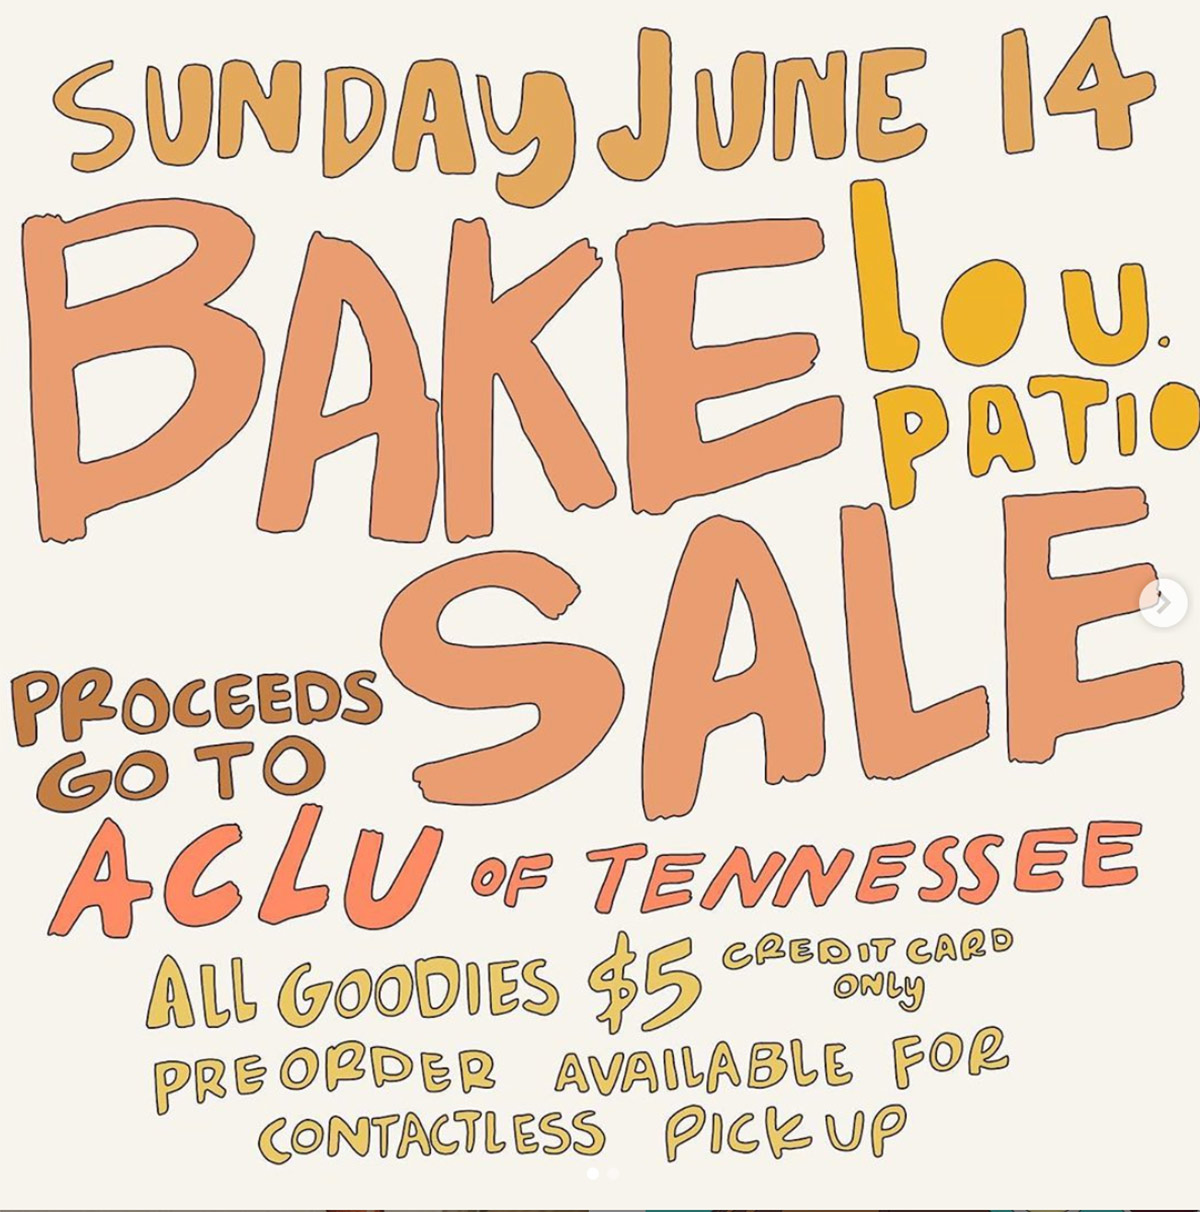 Bake Sale for ACLU